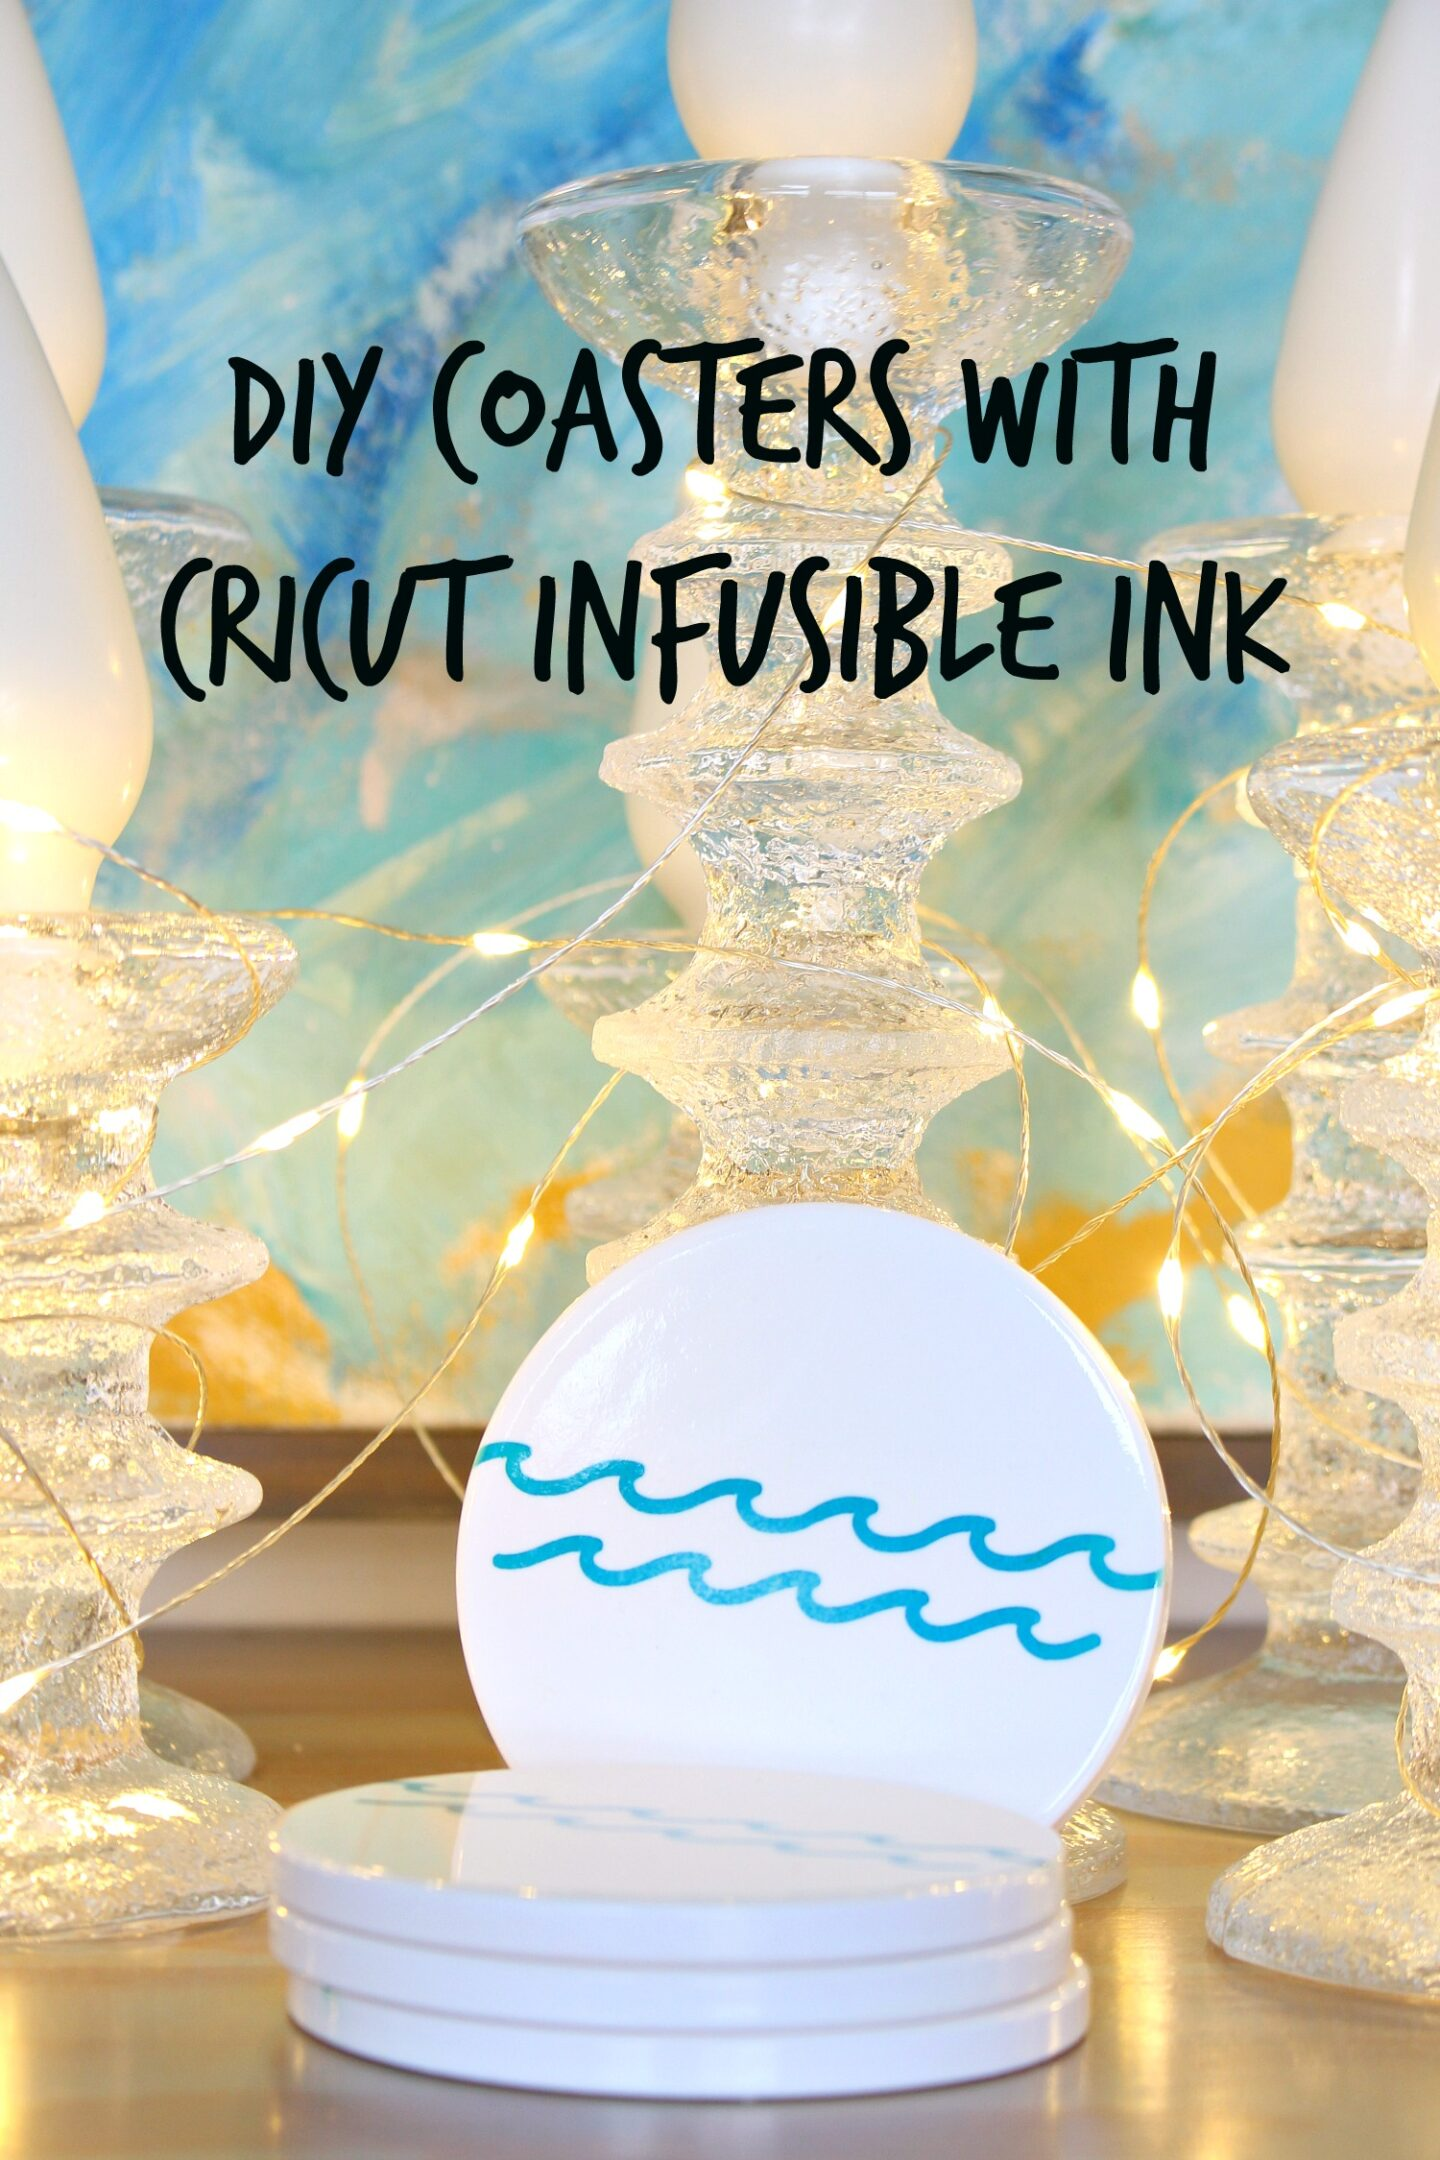 DIY Cricut Infusible Ink Coasters Project Tutorial